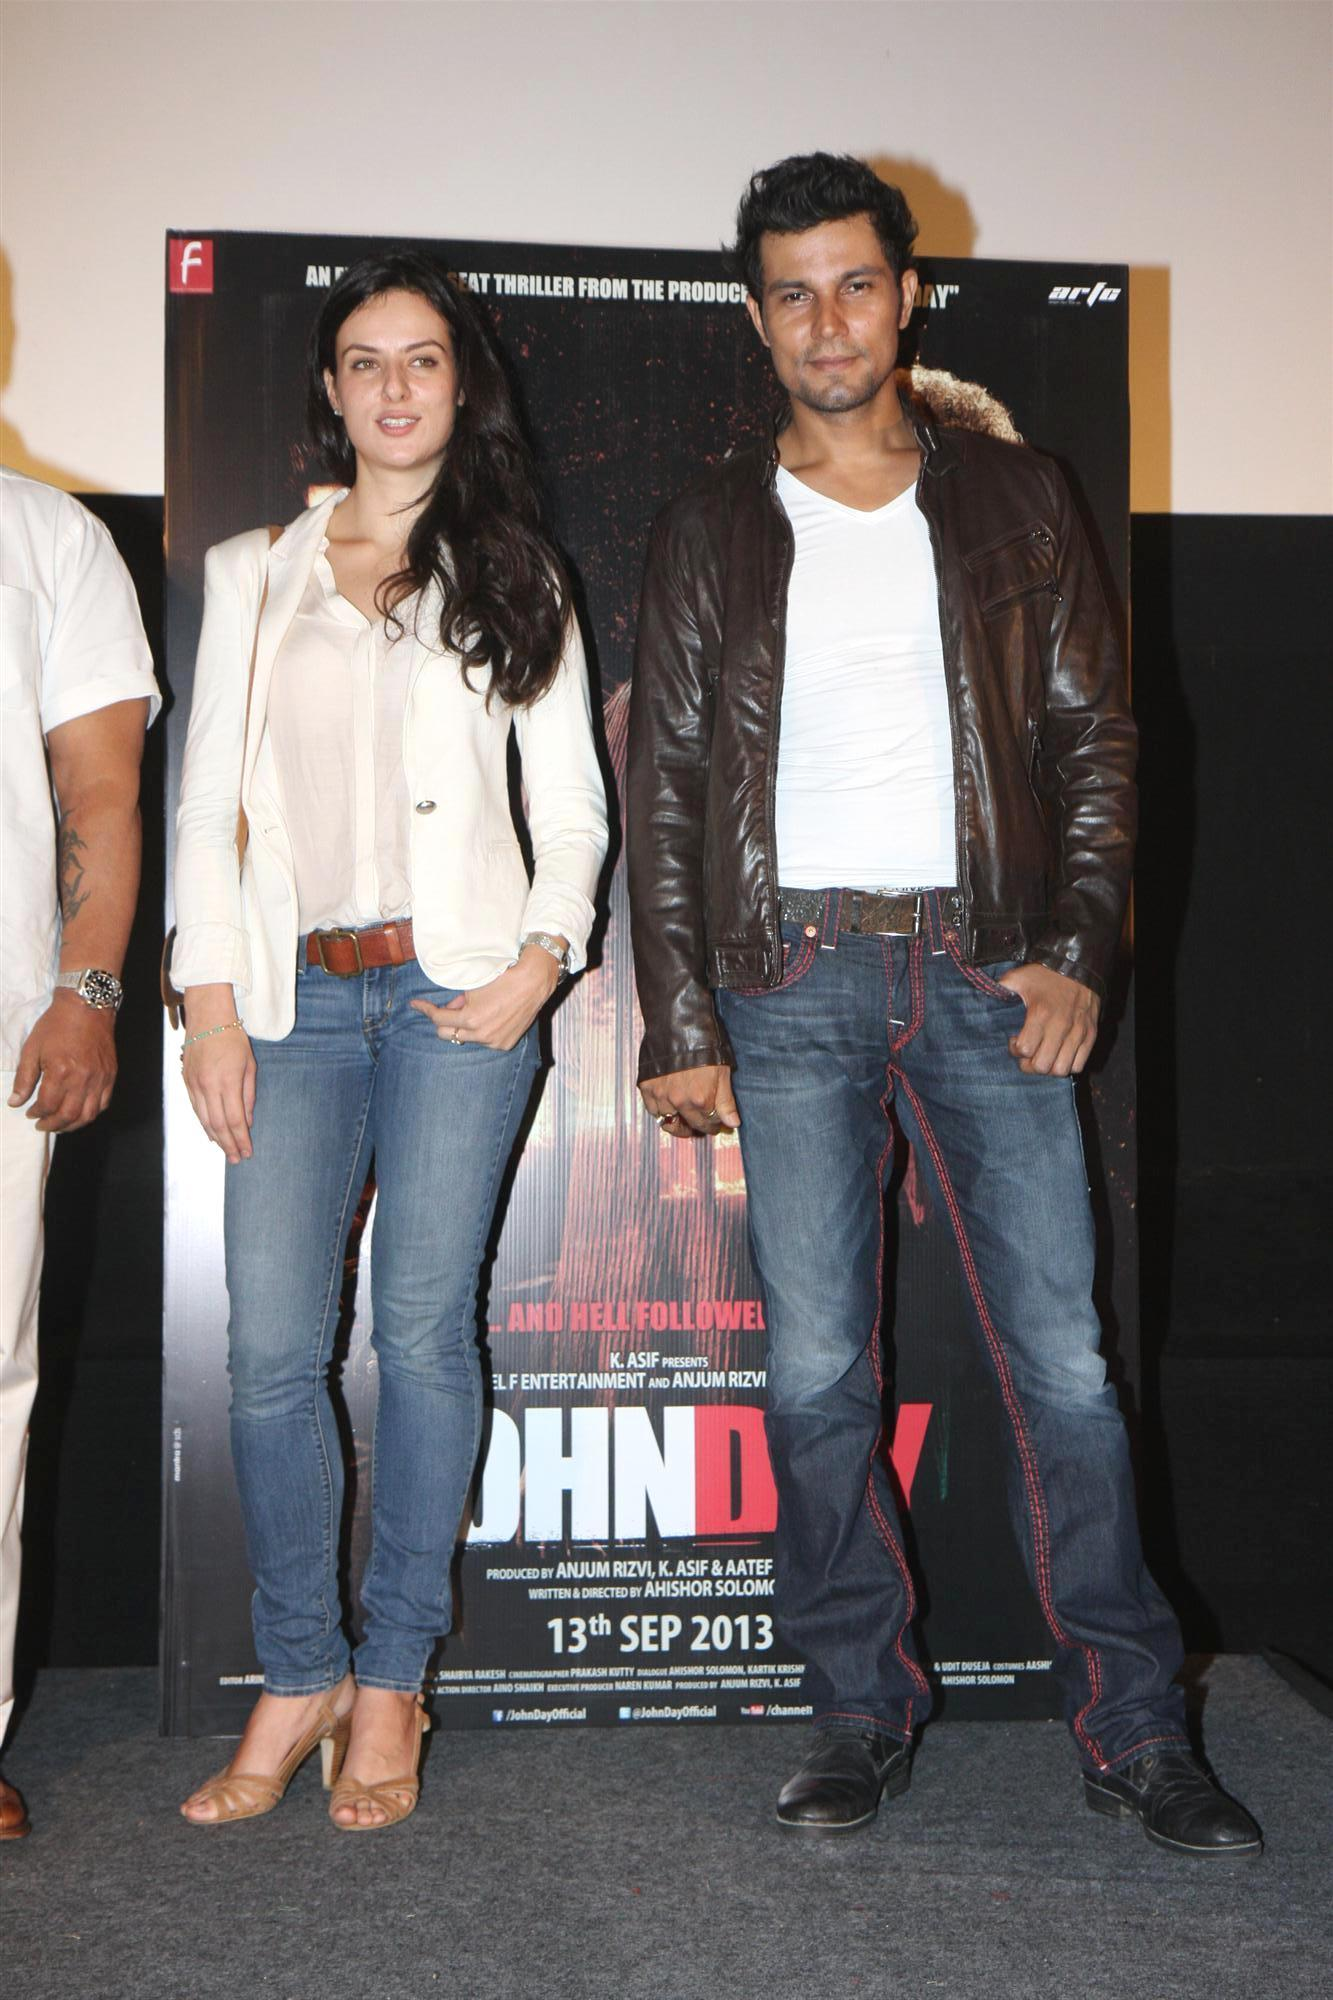 randeep hooda german actress elena kazan at film john day randeep hooda german actress elena kazan at film john day press meet in mumbai 5